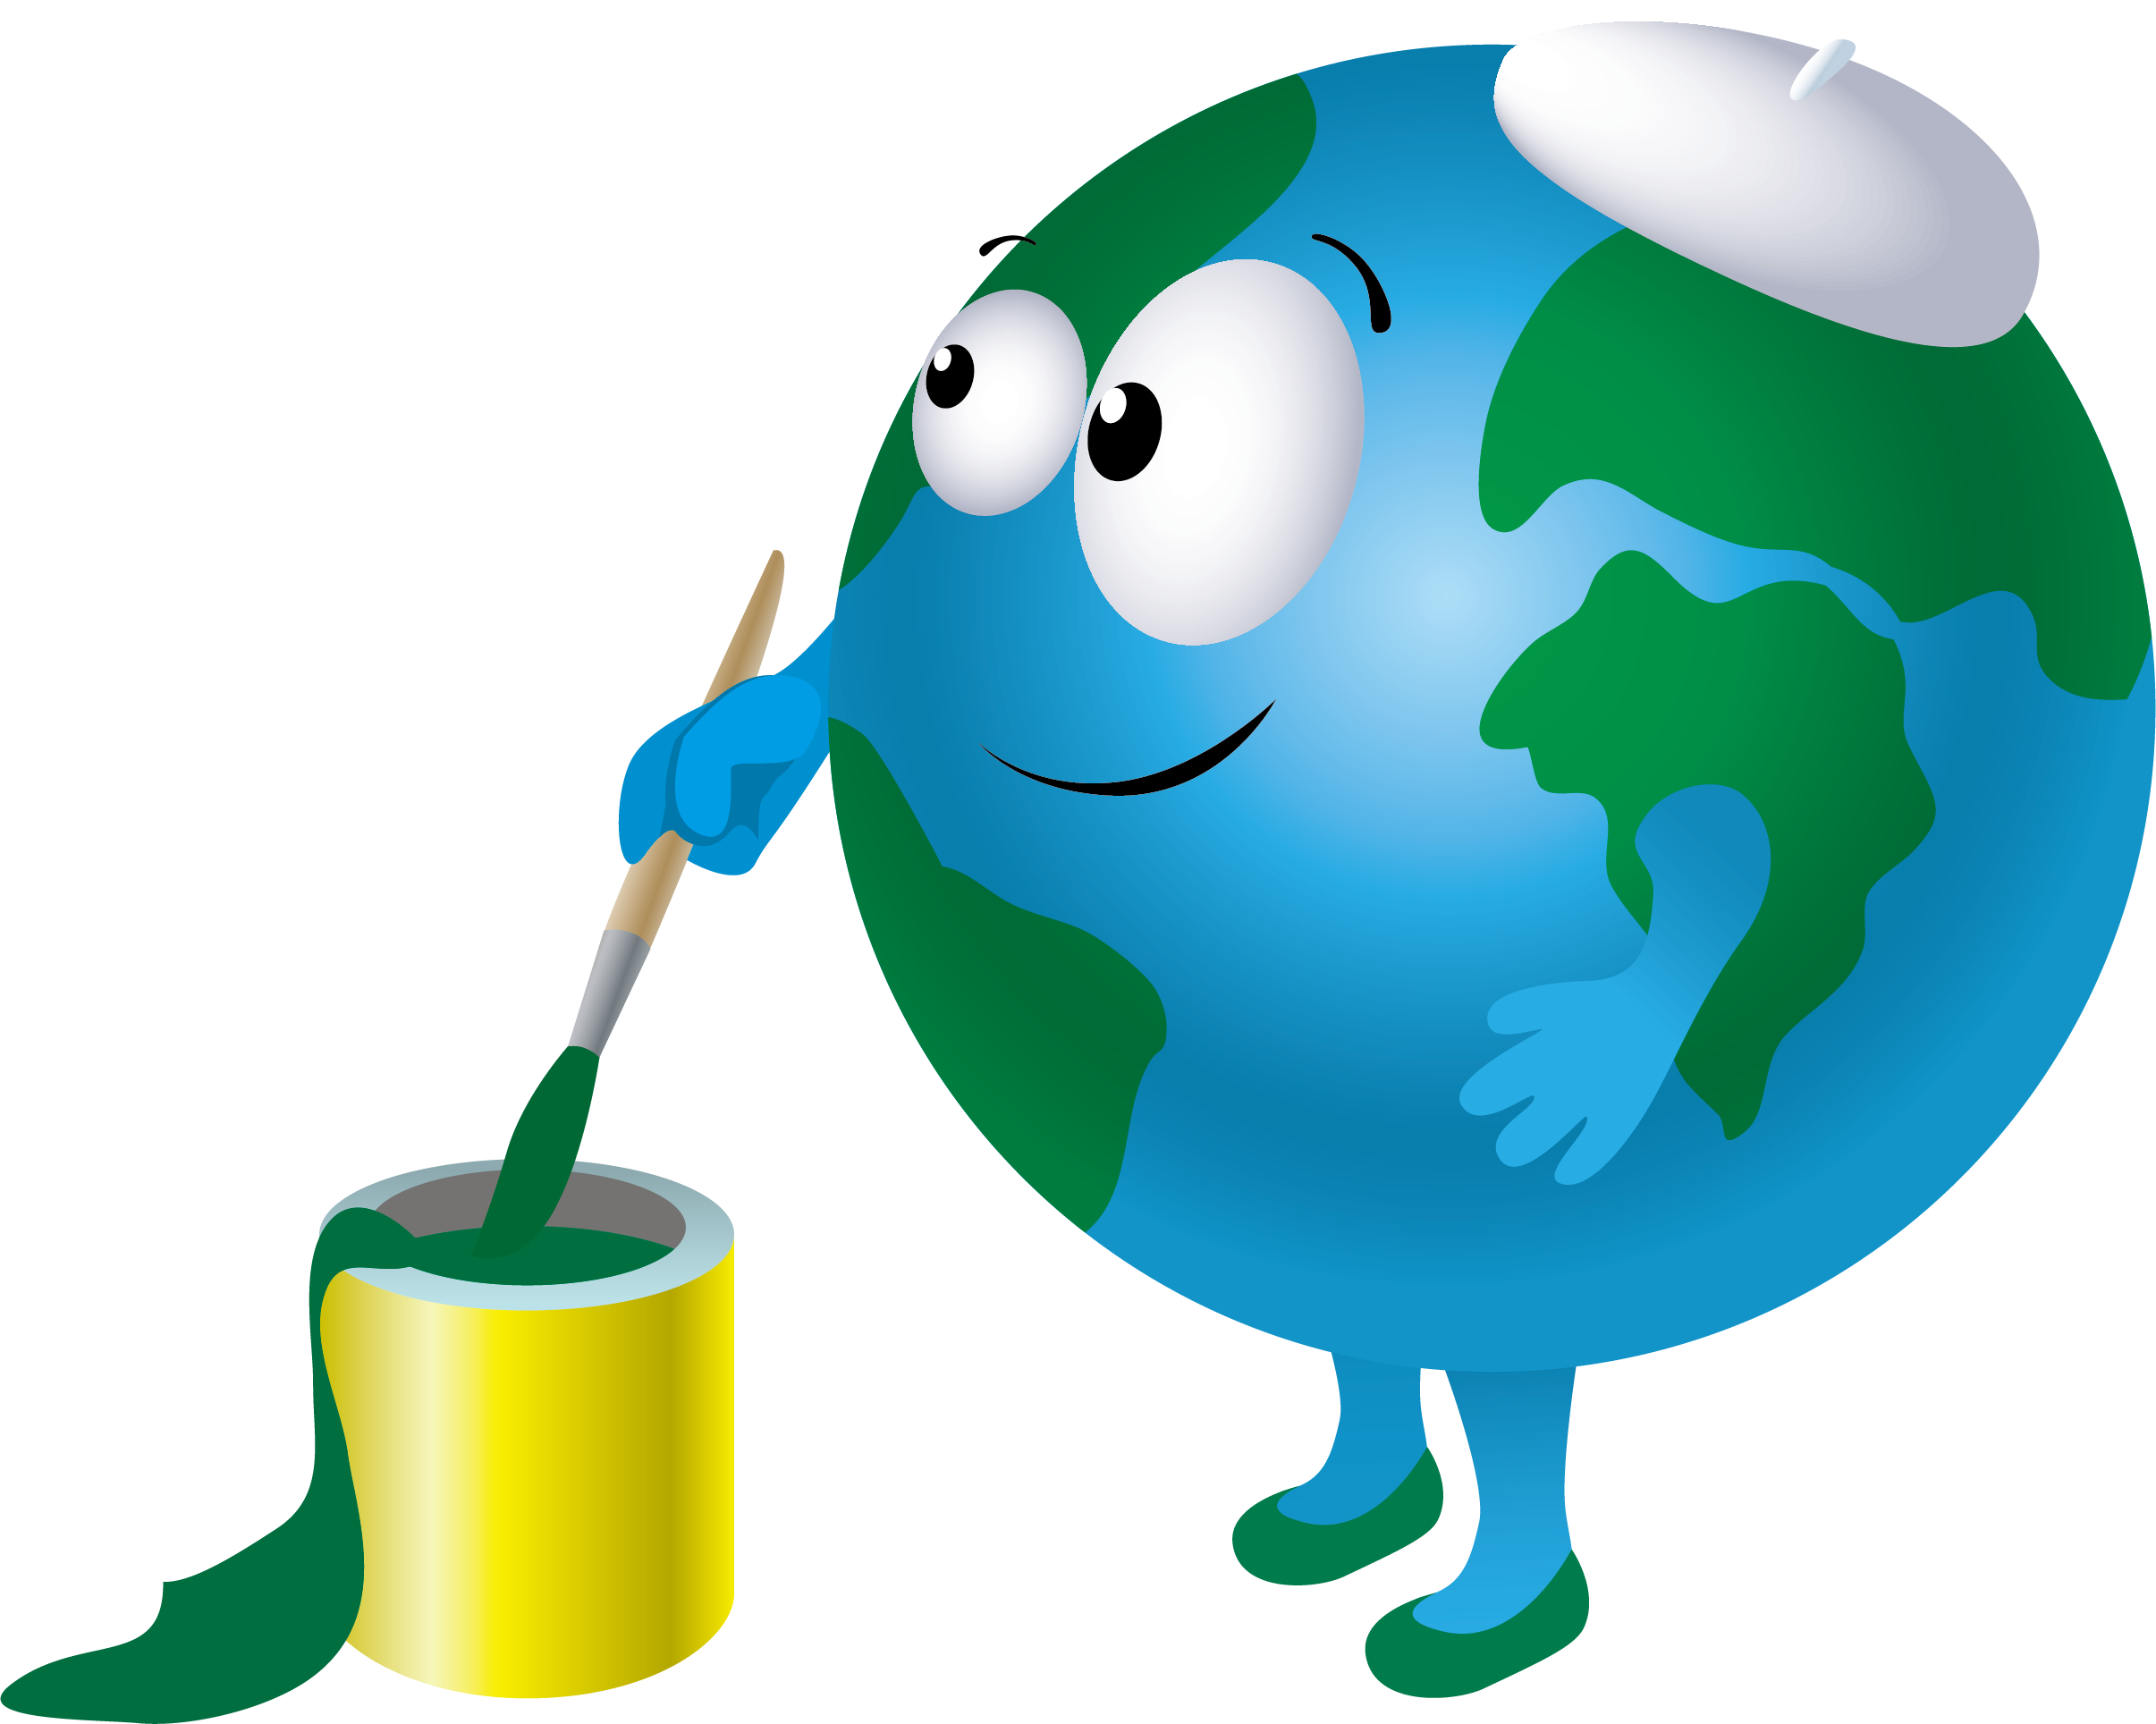 Saturn clip art painted. Planet clipart solar system